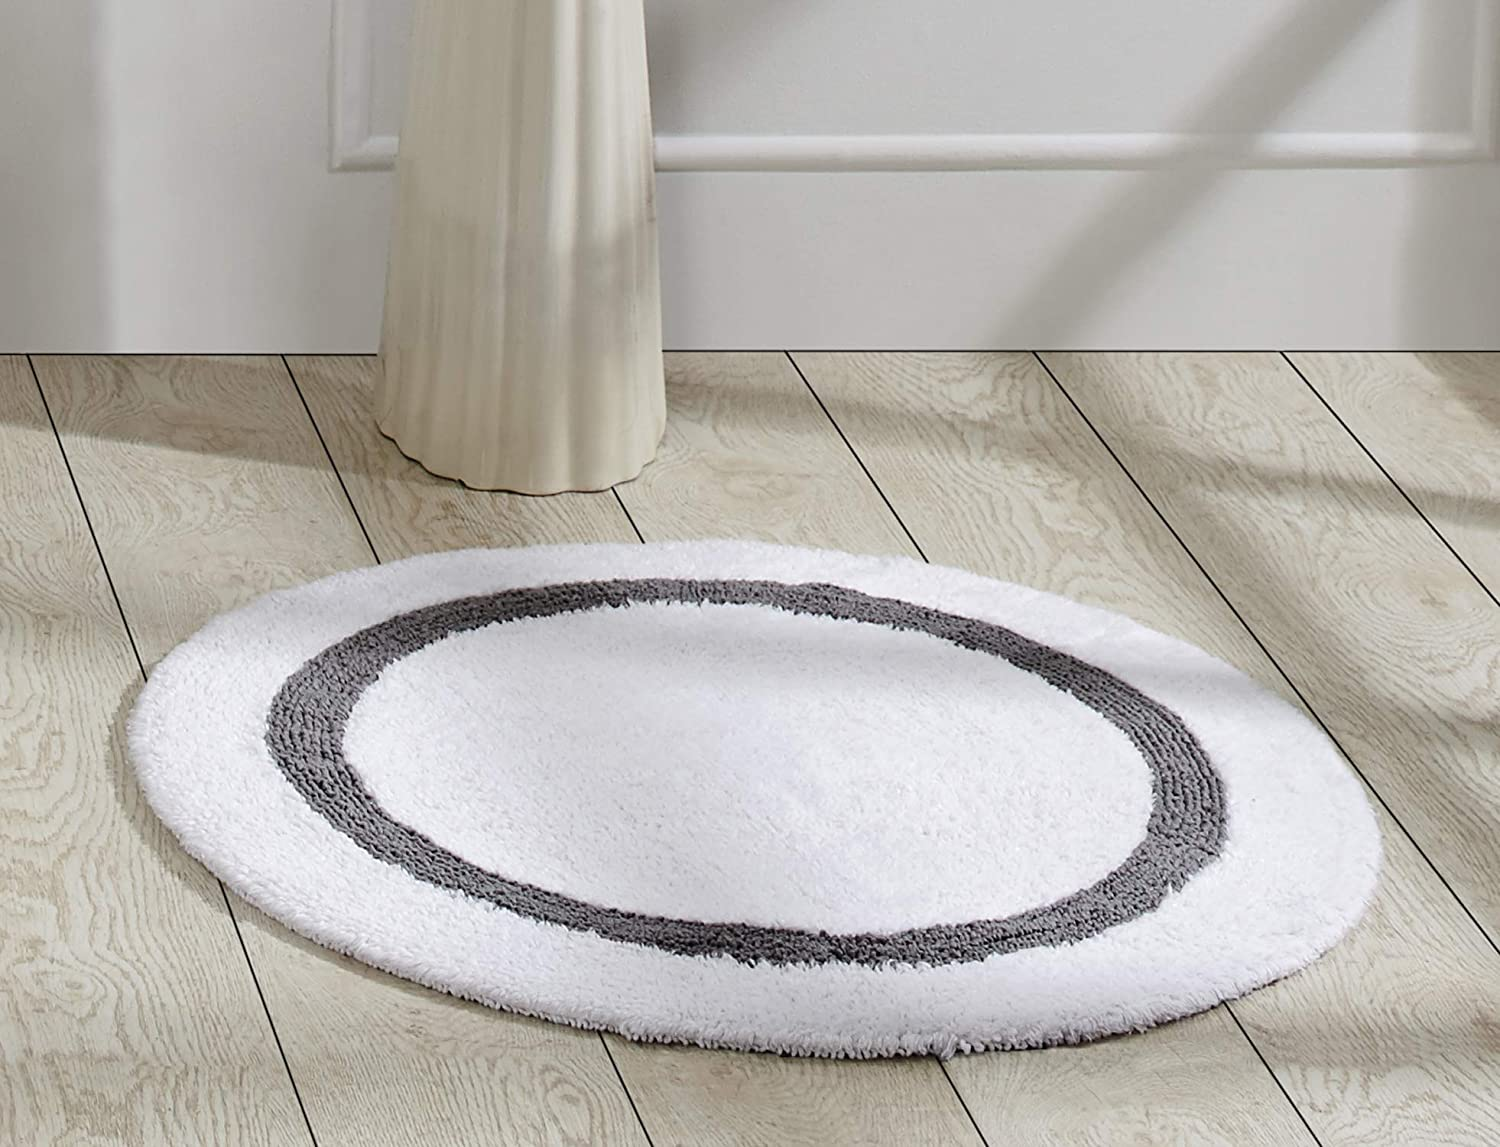 Better Trends Hotel Collection in Race Track Pattern Thick Bath Mat Rug Machine Washable 100/% Cotton Super Absorbent Reversible Double Sided 30 Round White /& Gray